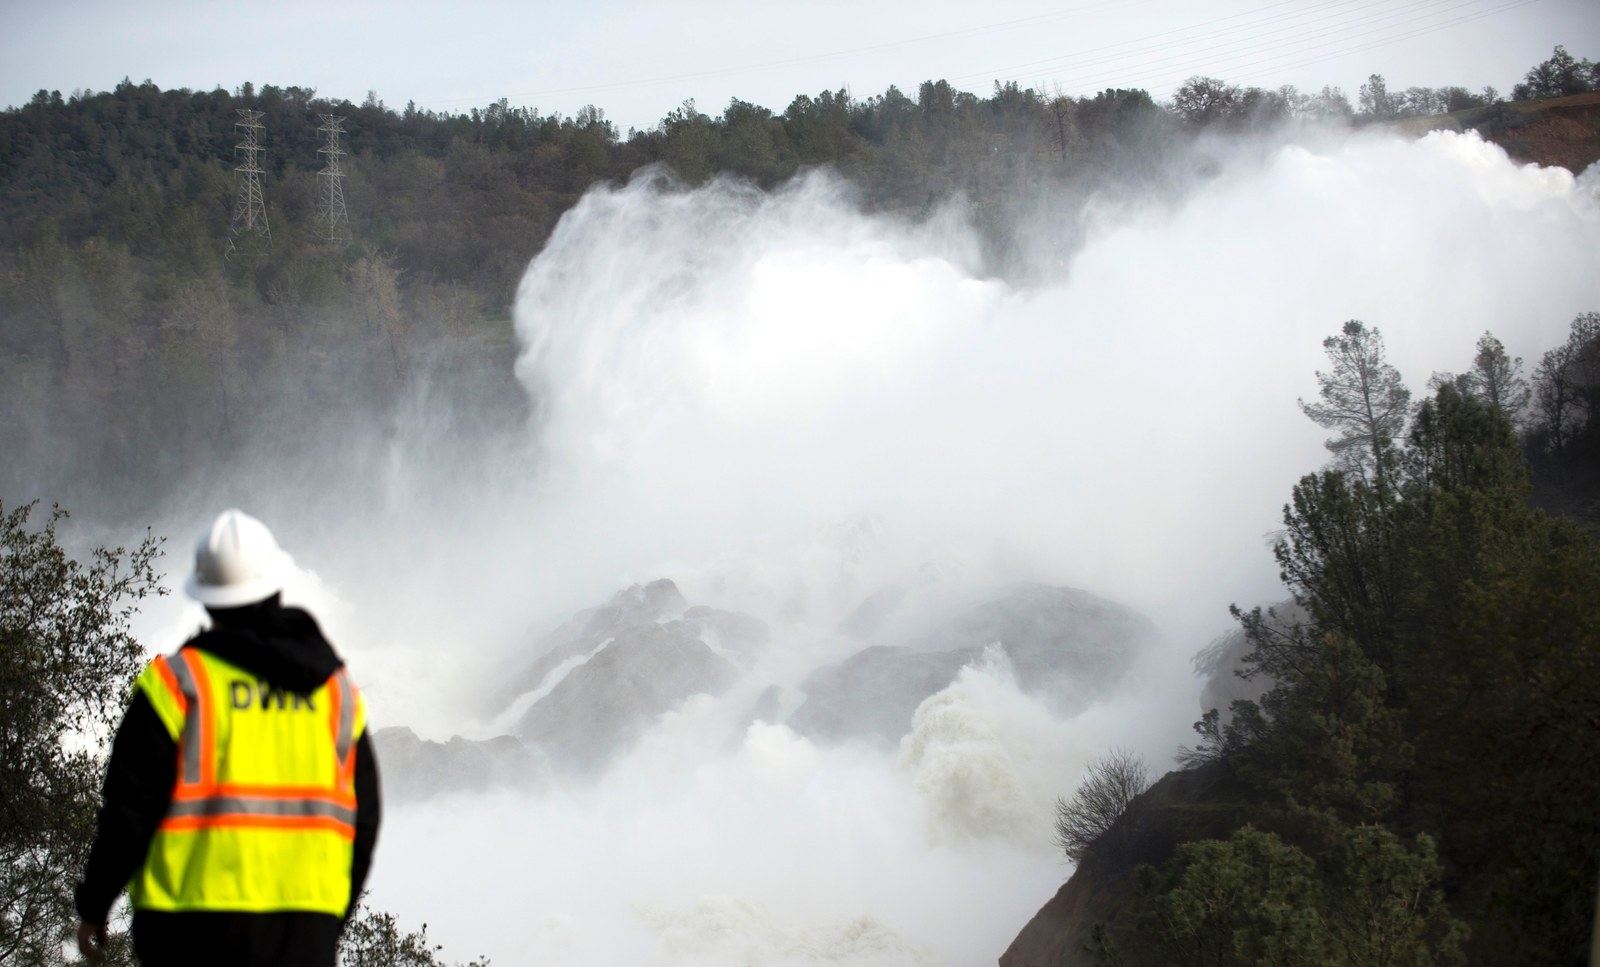 Overflowing water at the Oroville Dam in 2017.